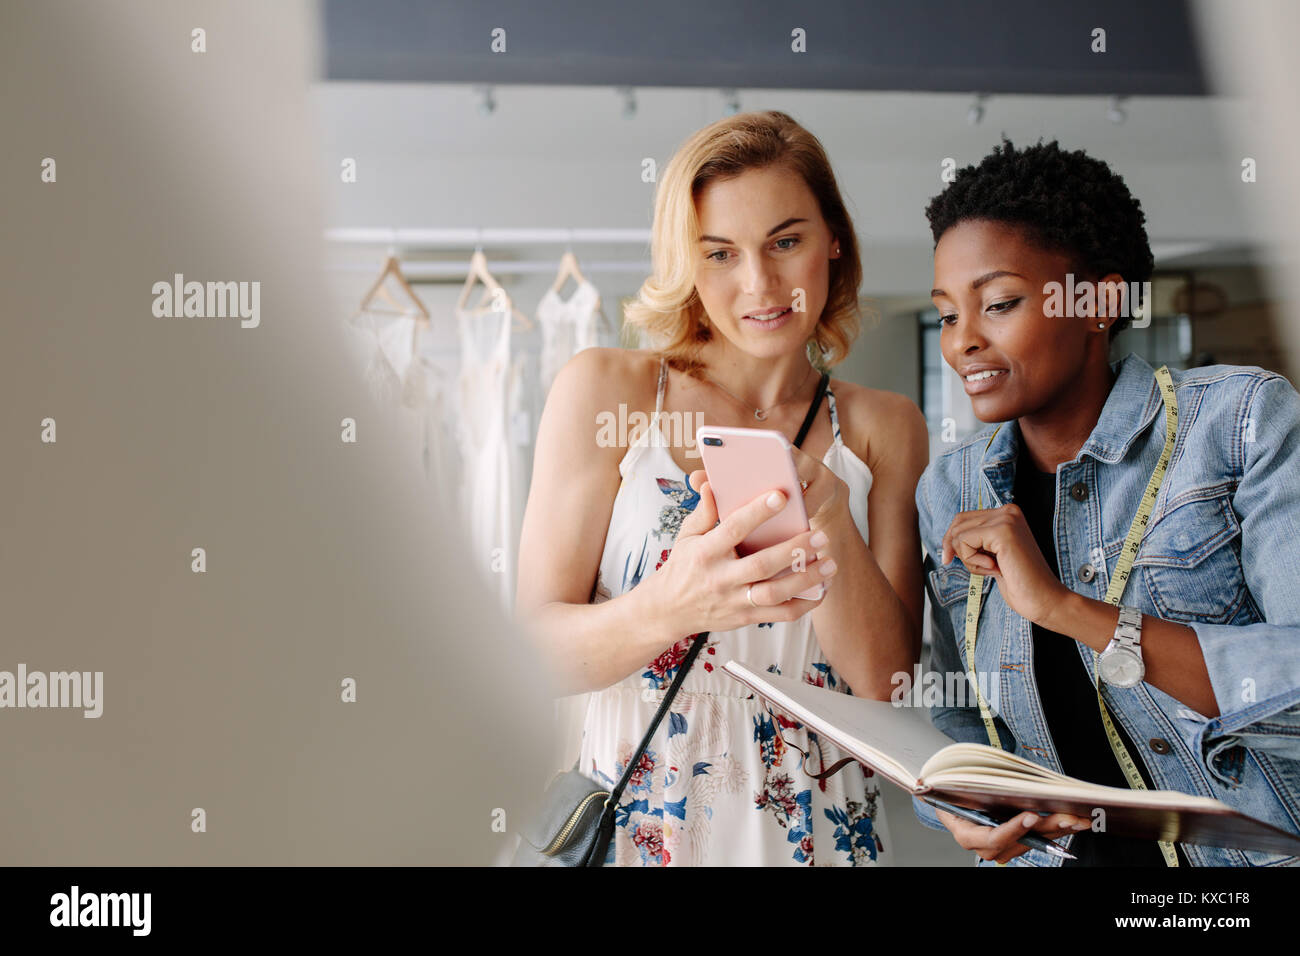 Woman showing a bridal wear pattern on her mobile phone to bridal dress tailor. Bride shopping for wedding outfit - Stock Image